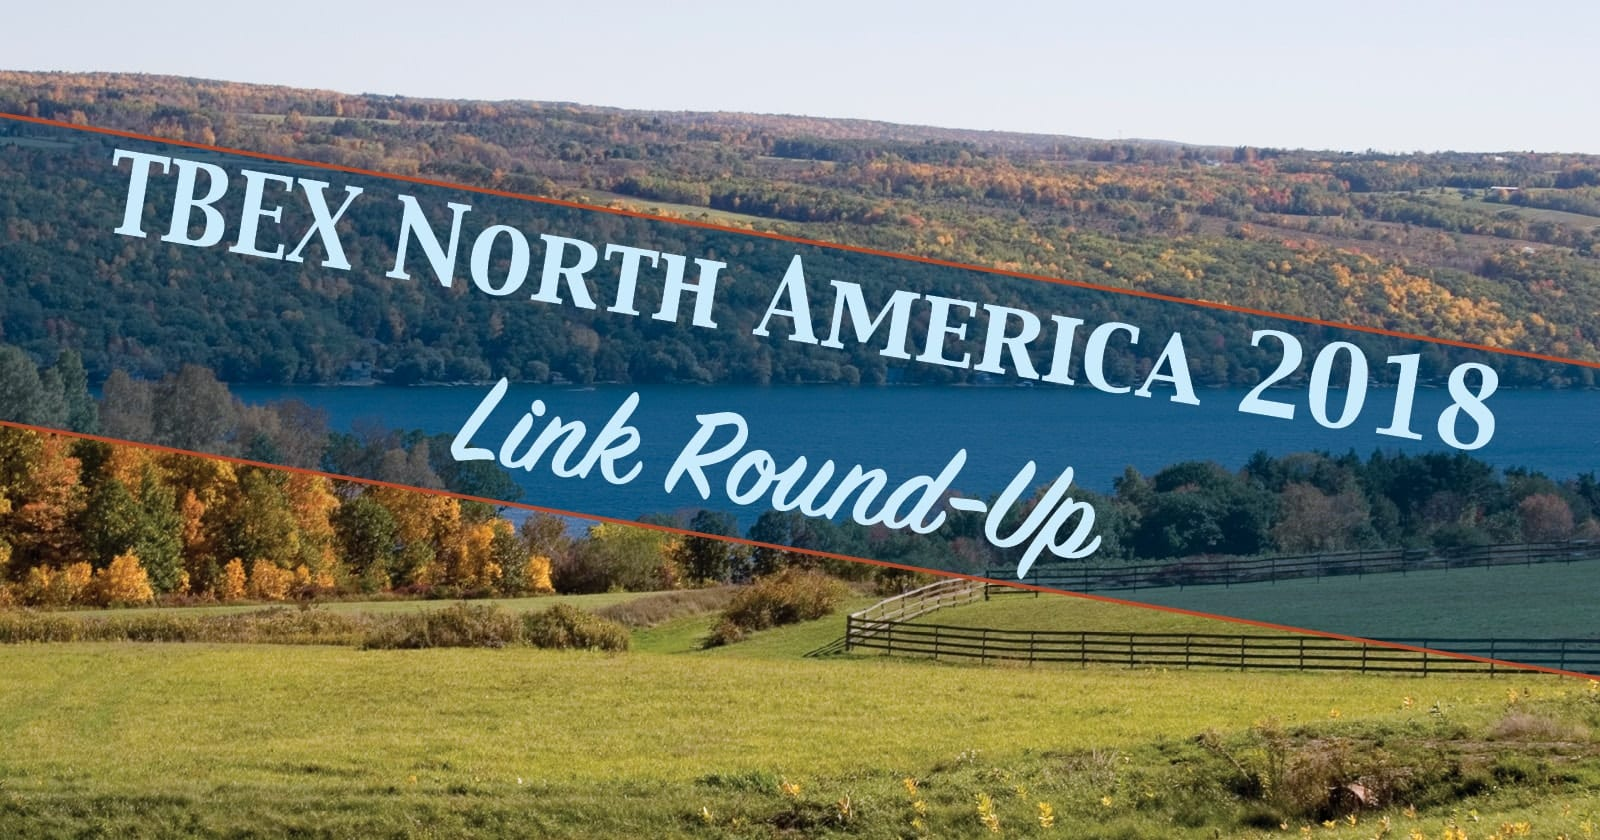 TBEX North America 2018 Link Round Up